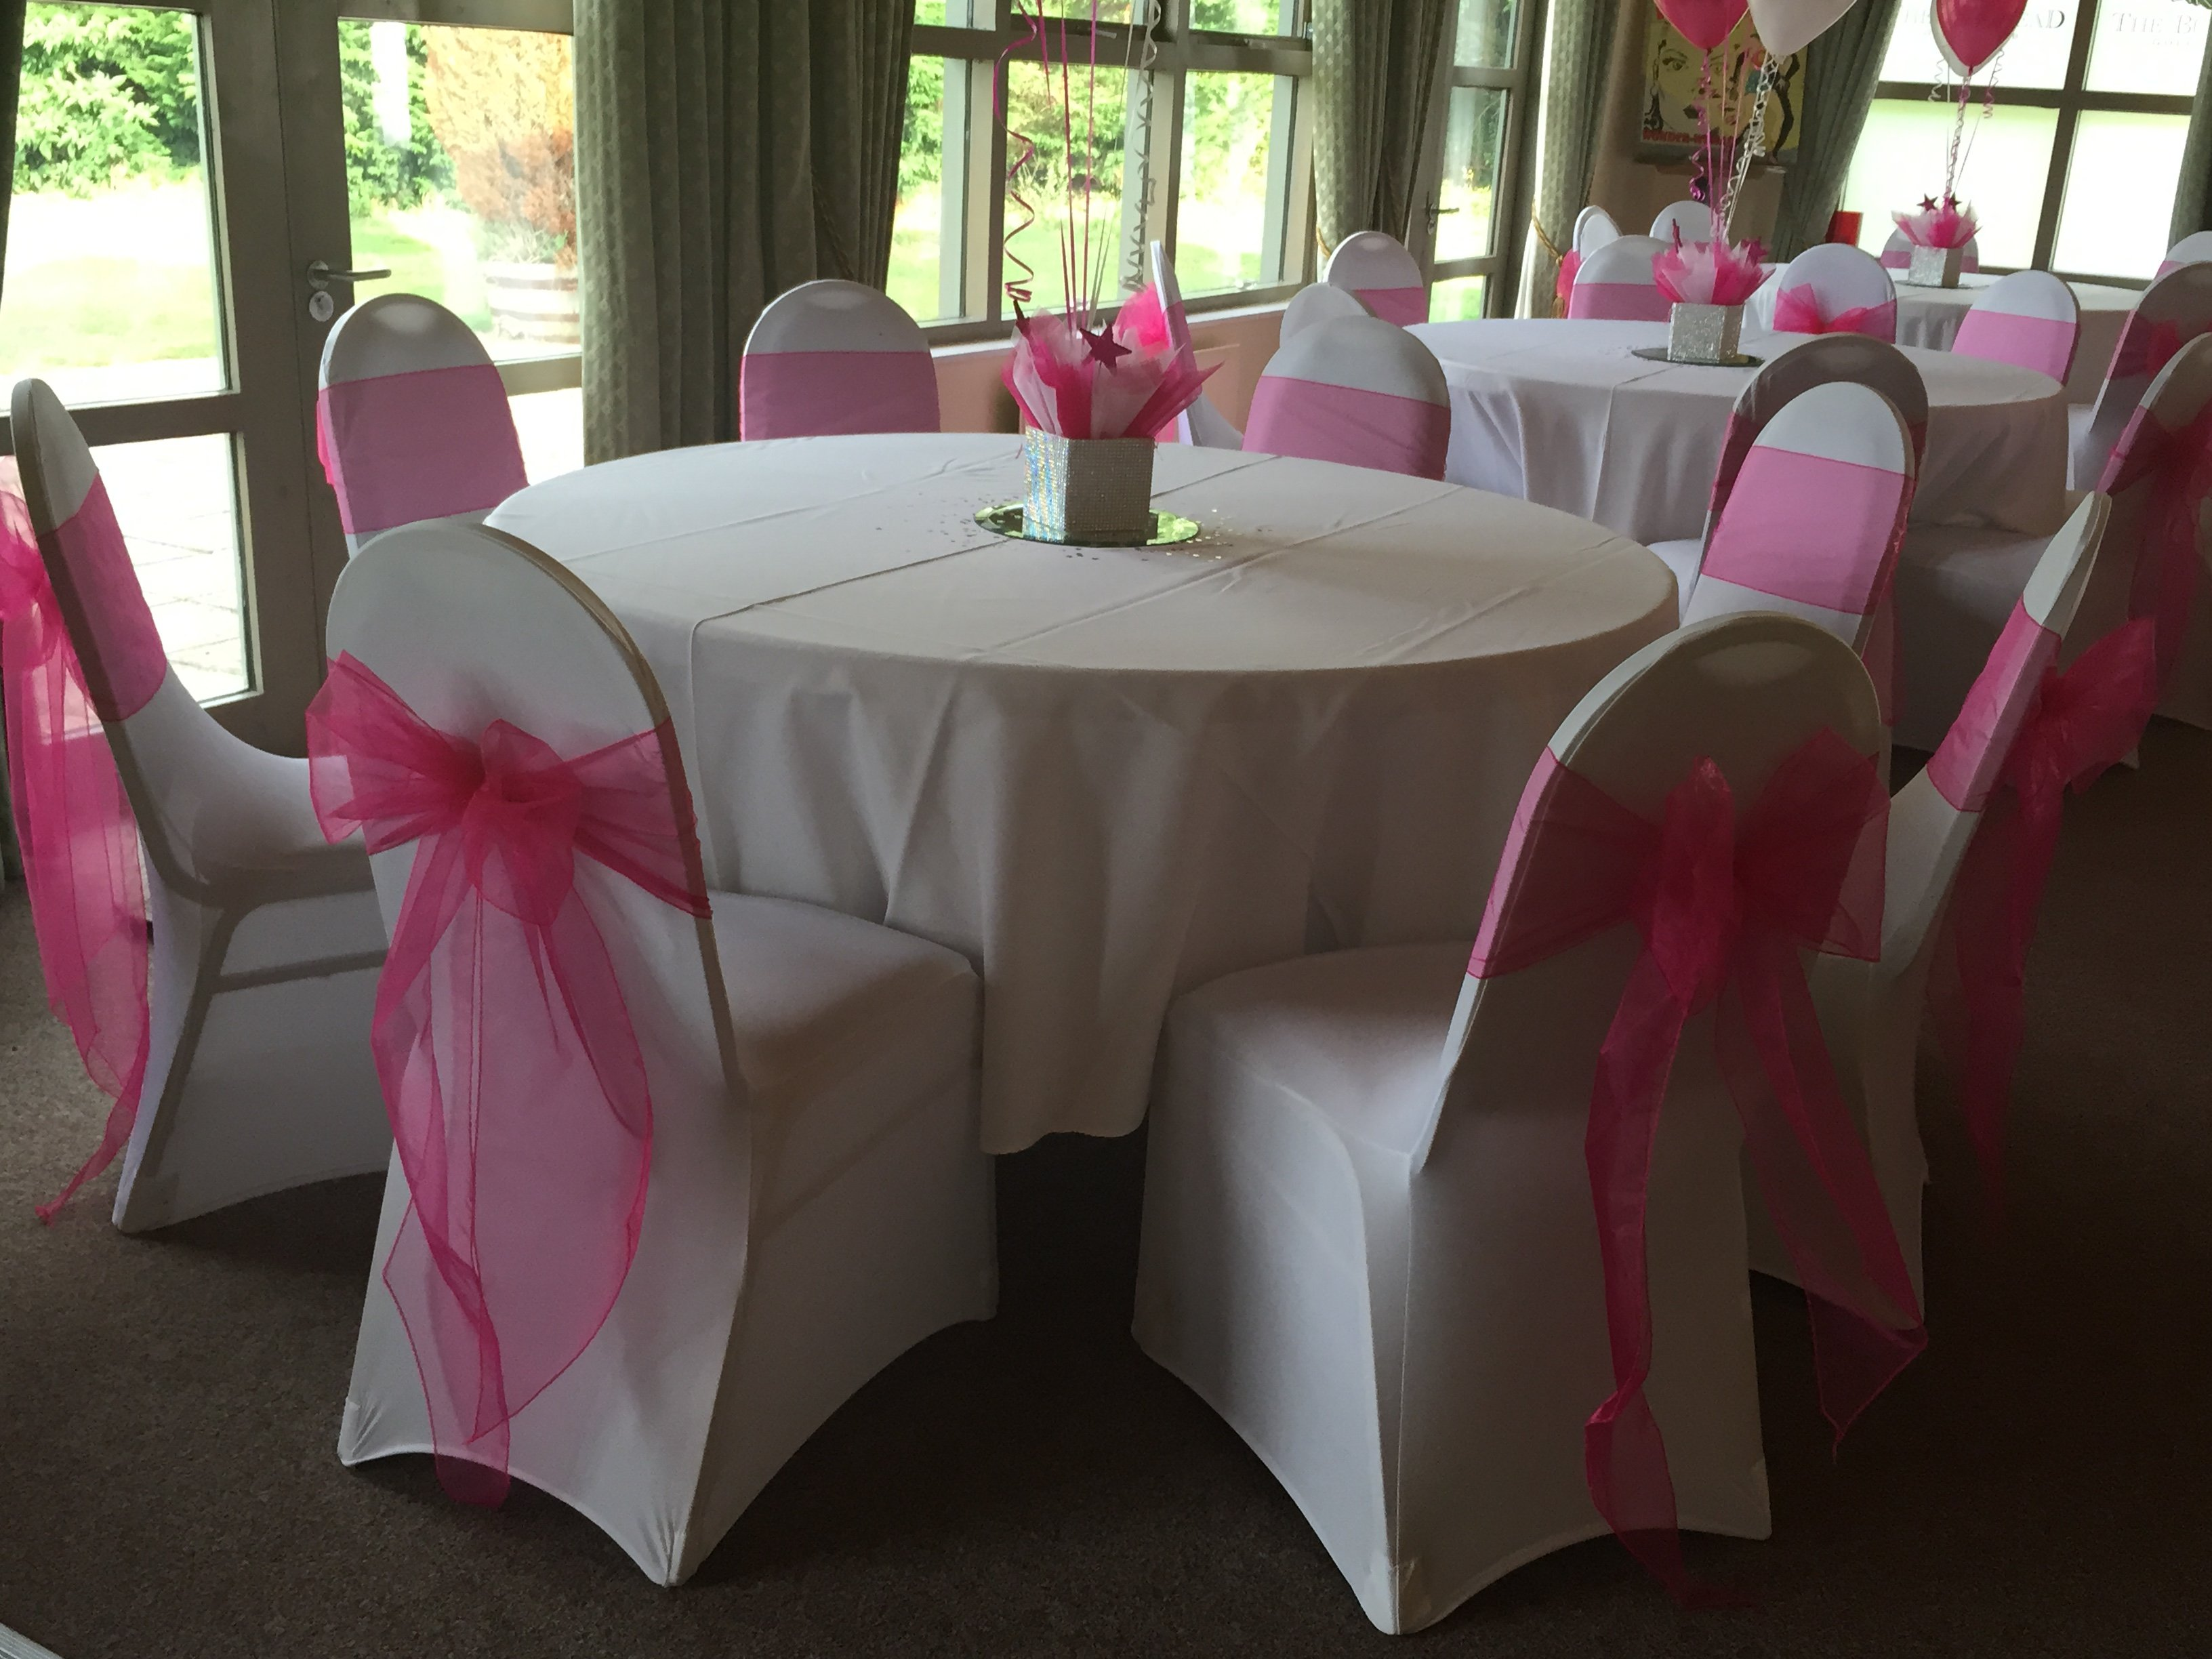 White chair covers with white sash - Pink Organza Sash With White Lycra Chair Covers At Burstead Golf Club